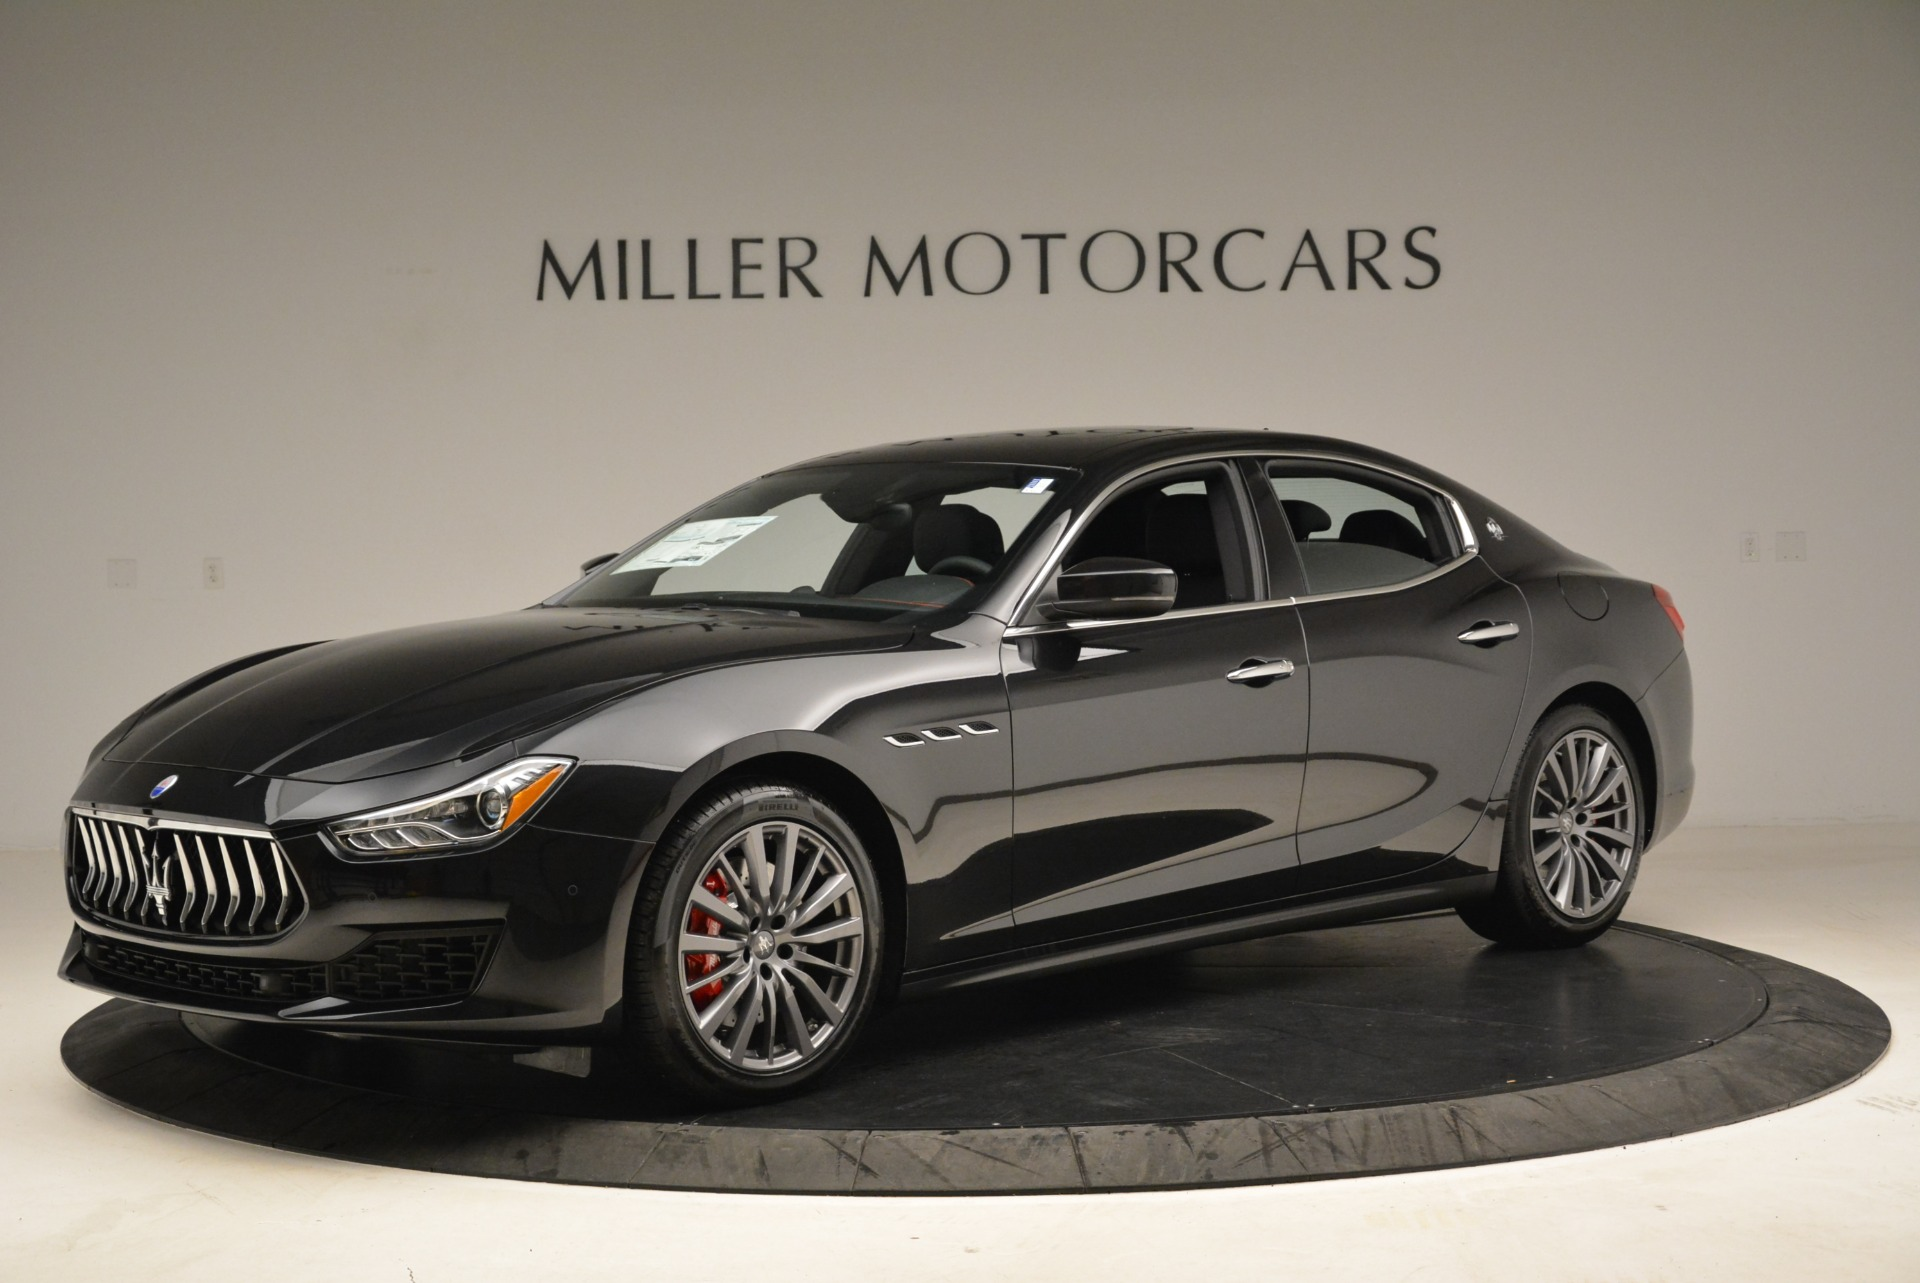 Used 2018 Maserati Ghibli S Q4 for sale $55,900 at Rolls-Royce Motor Cars Greenwich in Greenwich CT 06830 1